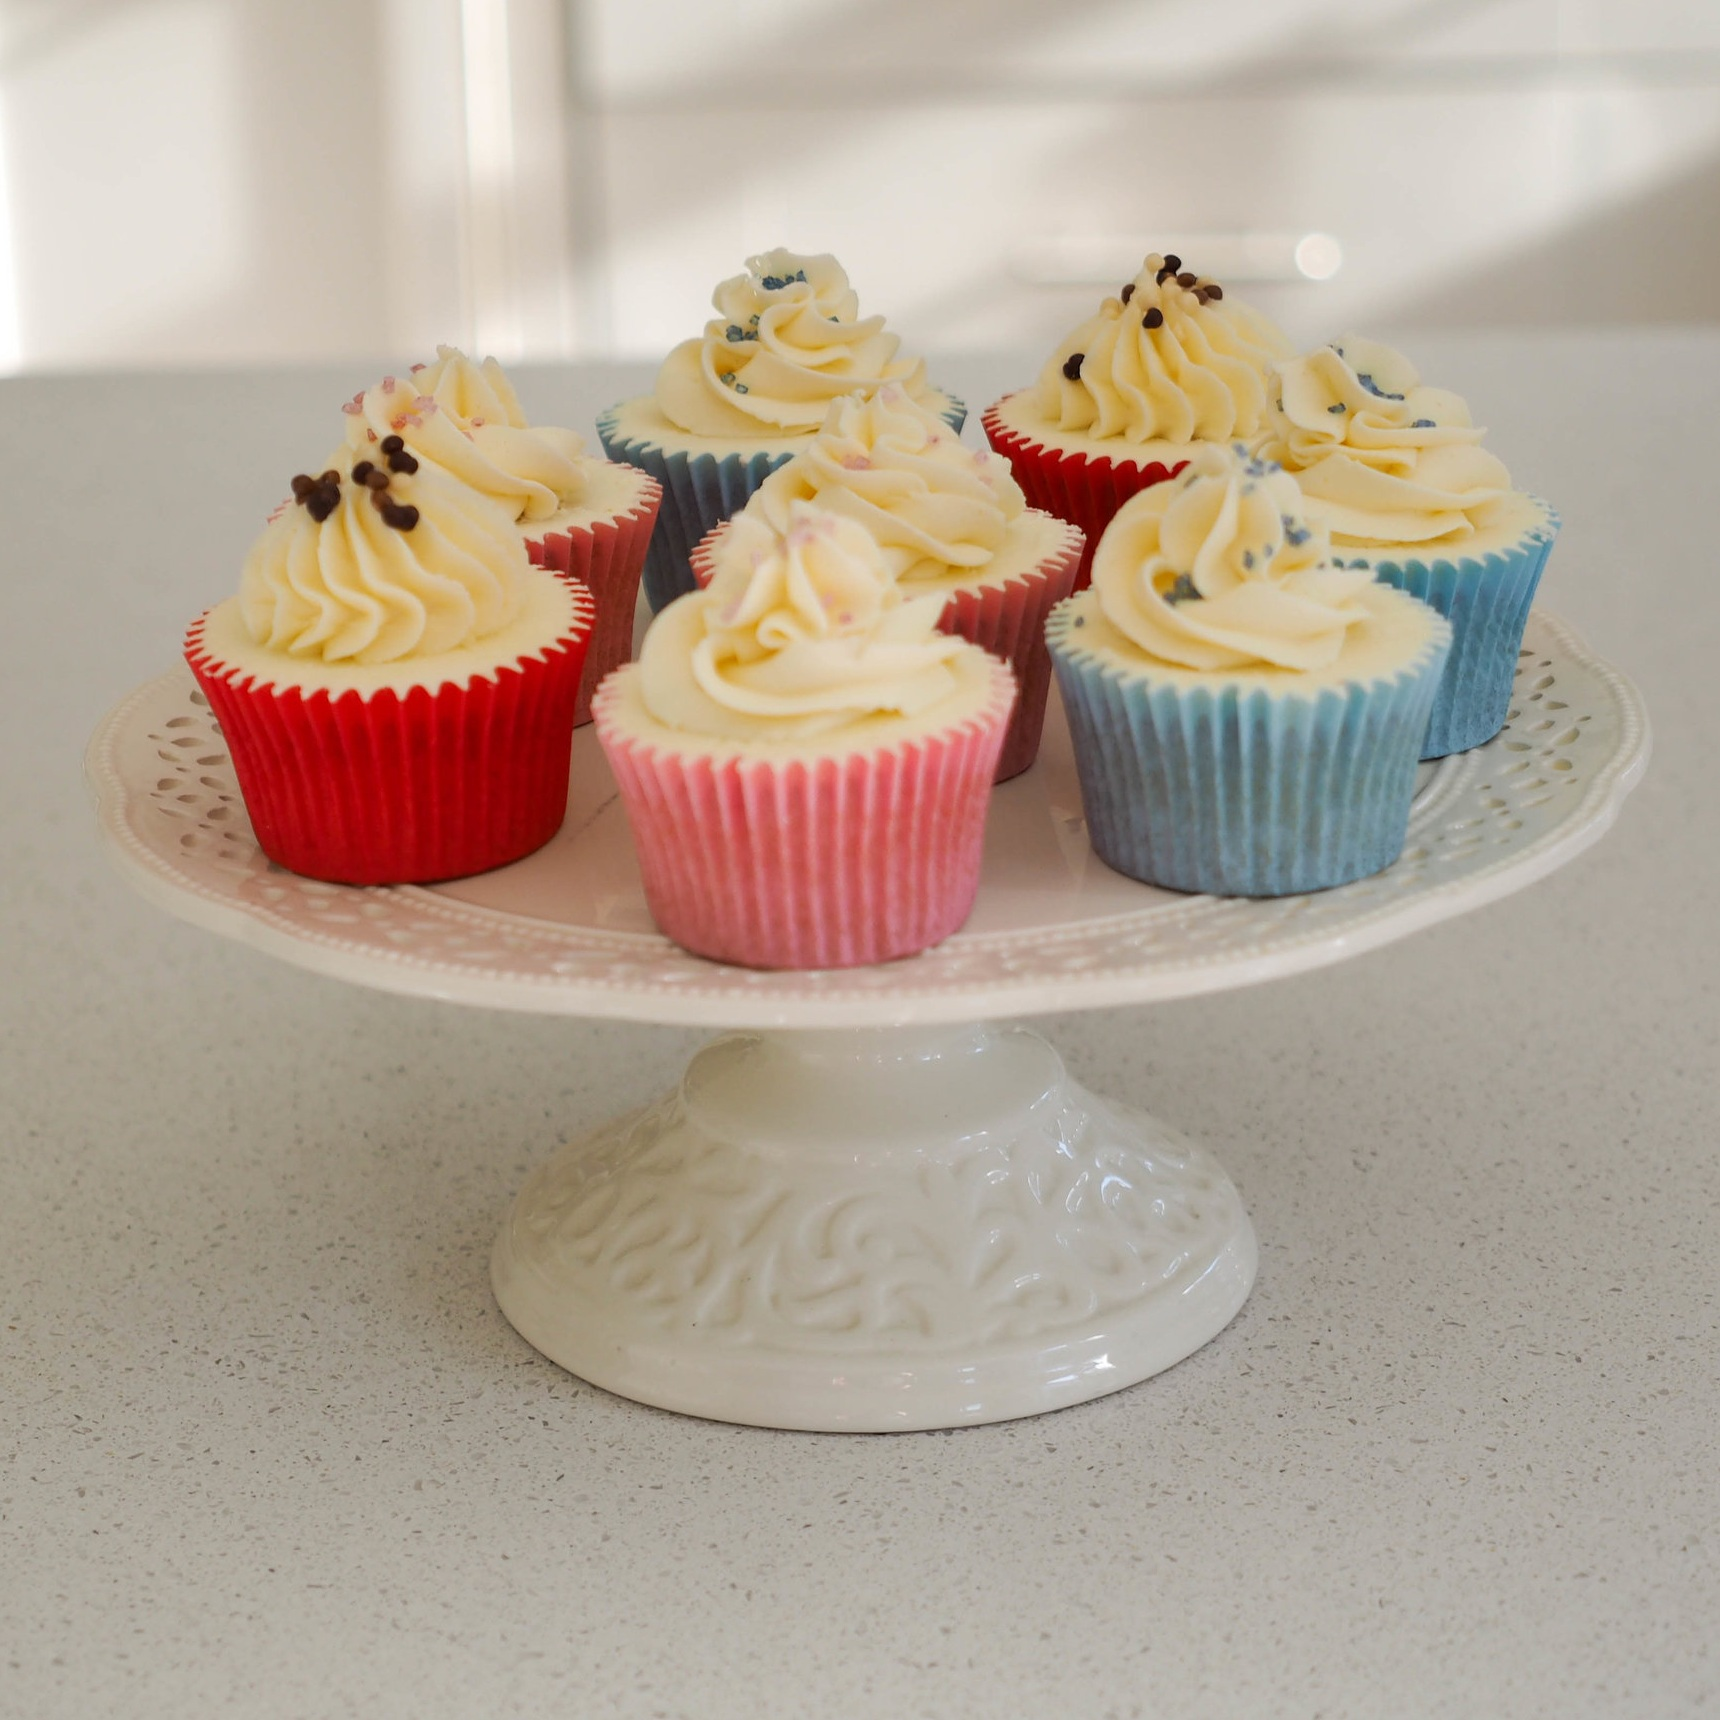 Cupcakes by Post | UK Delivery